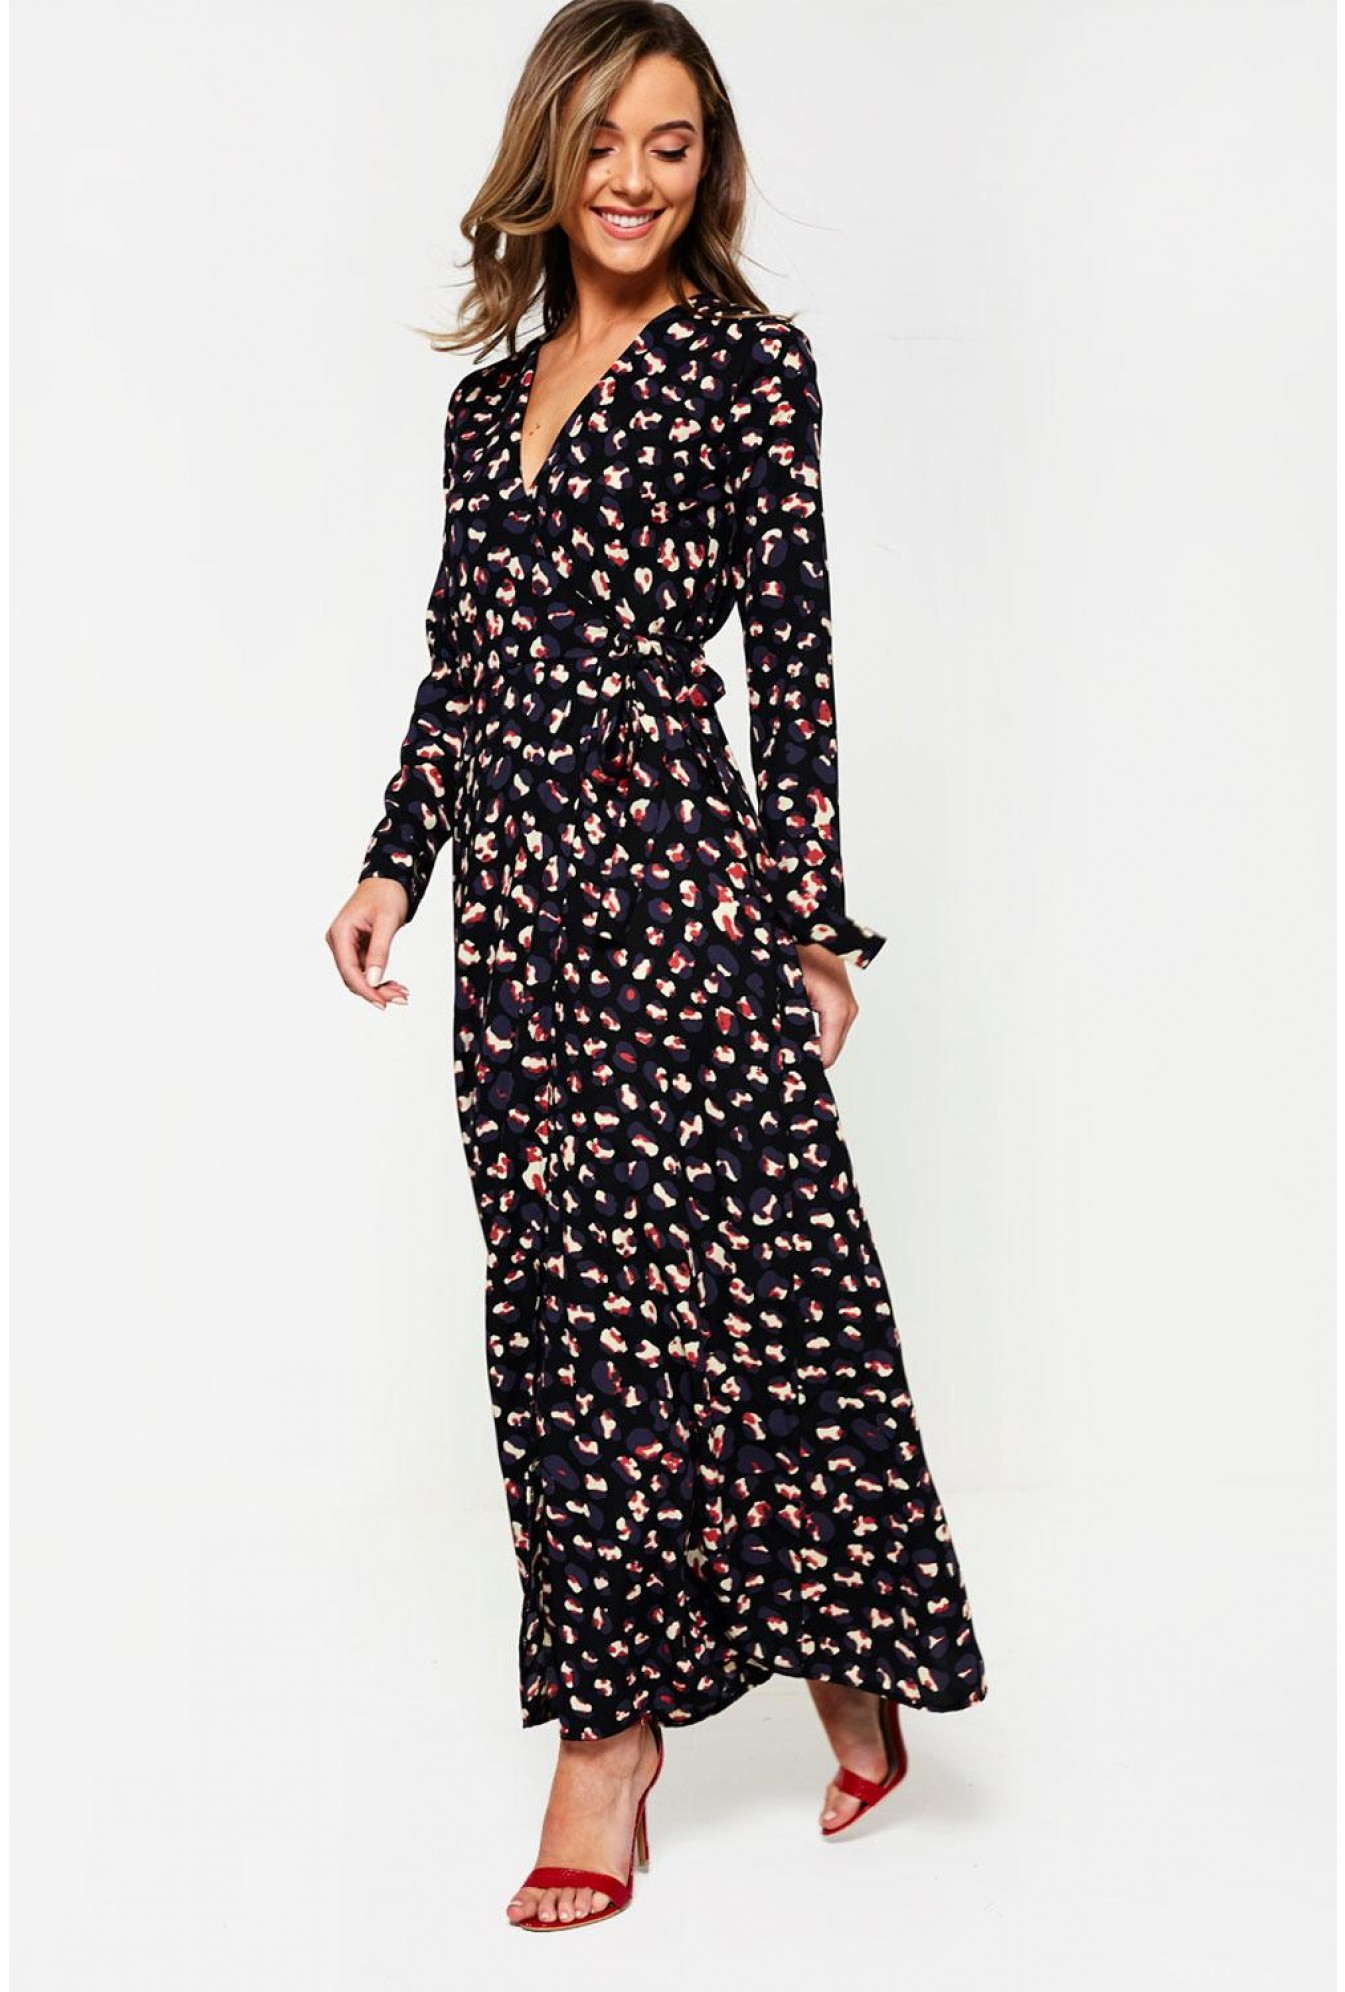 9b3a4461 More Views. Animal Print Maxi Wrap Dress ...